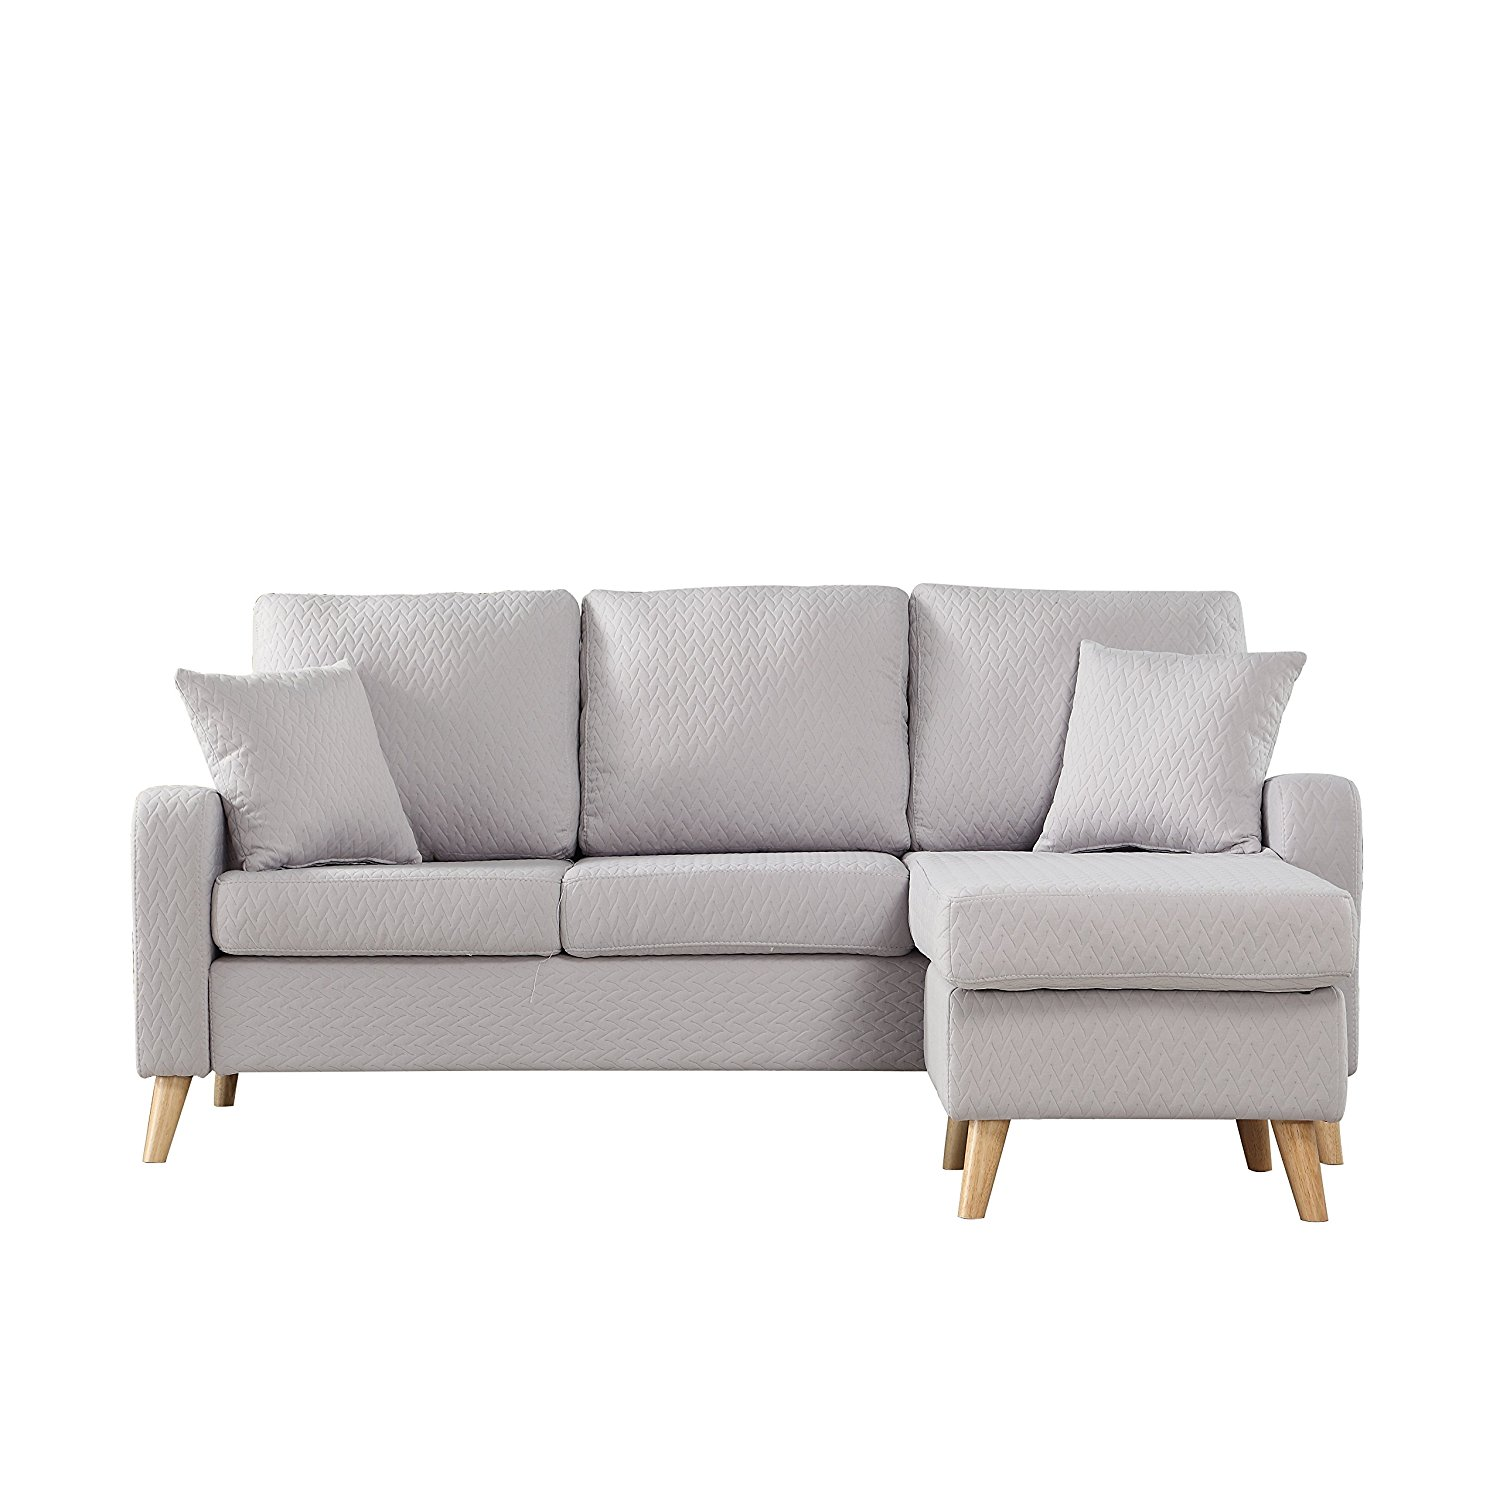 Discount Modern Sofas: Modern Design Sectional Sofa With Reversible Chaise + 10